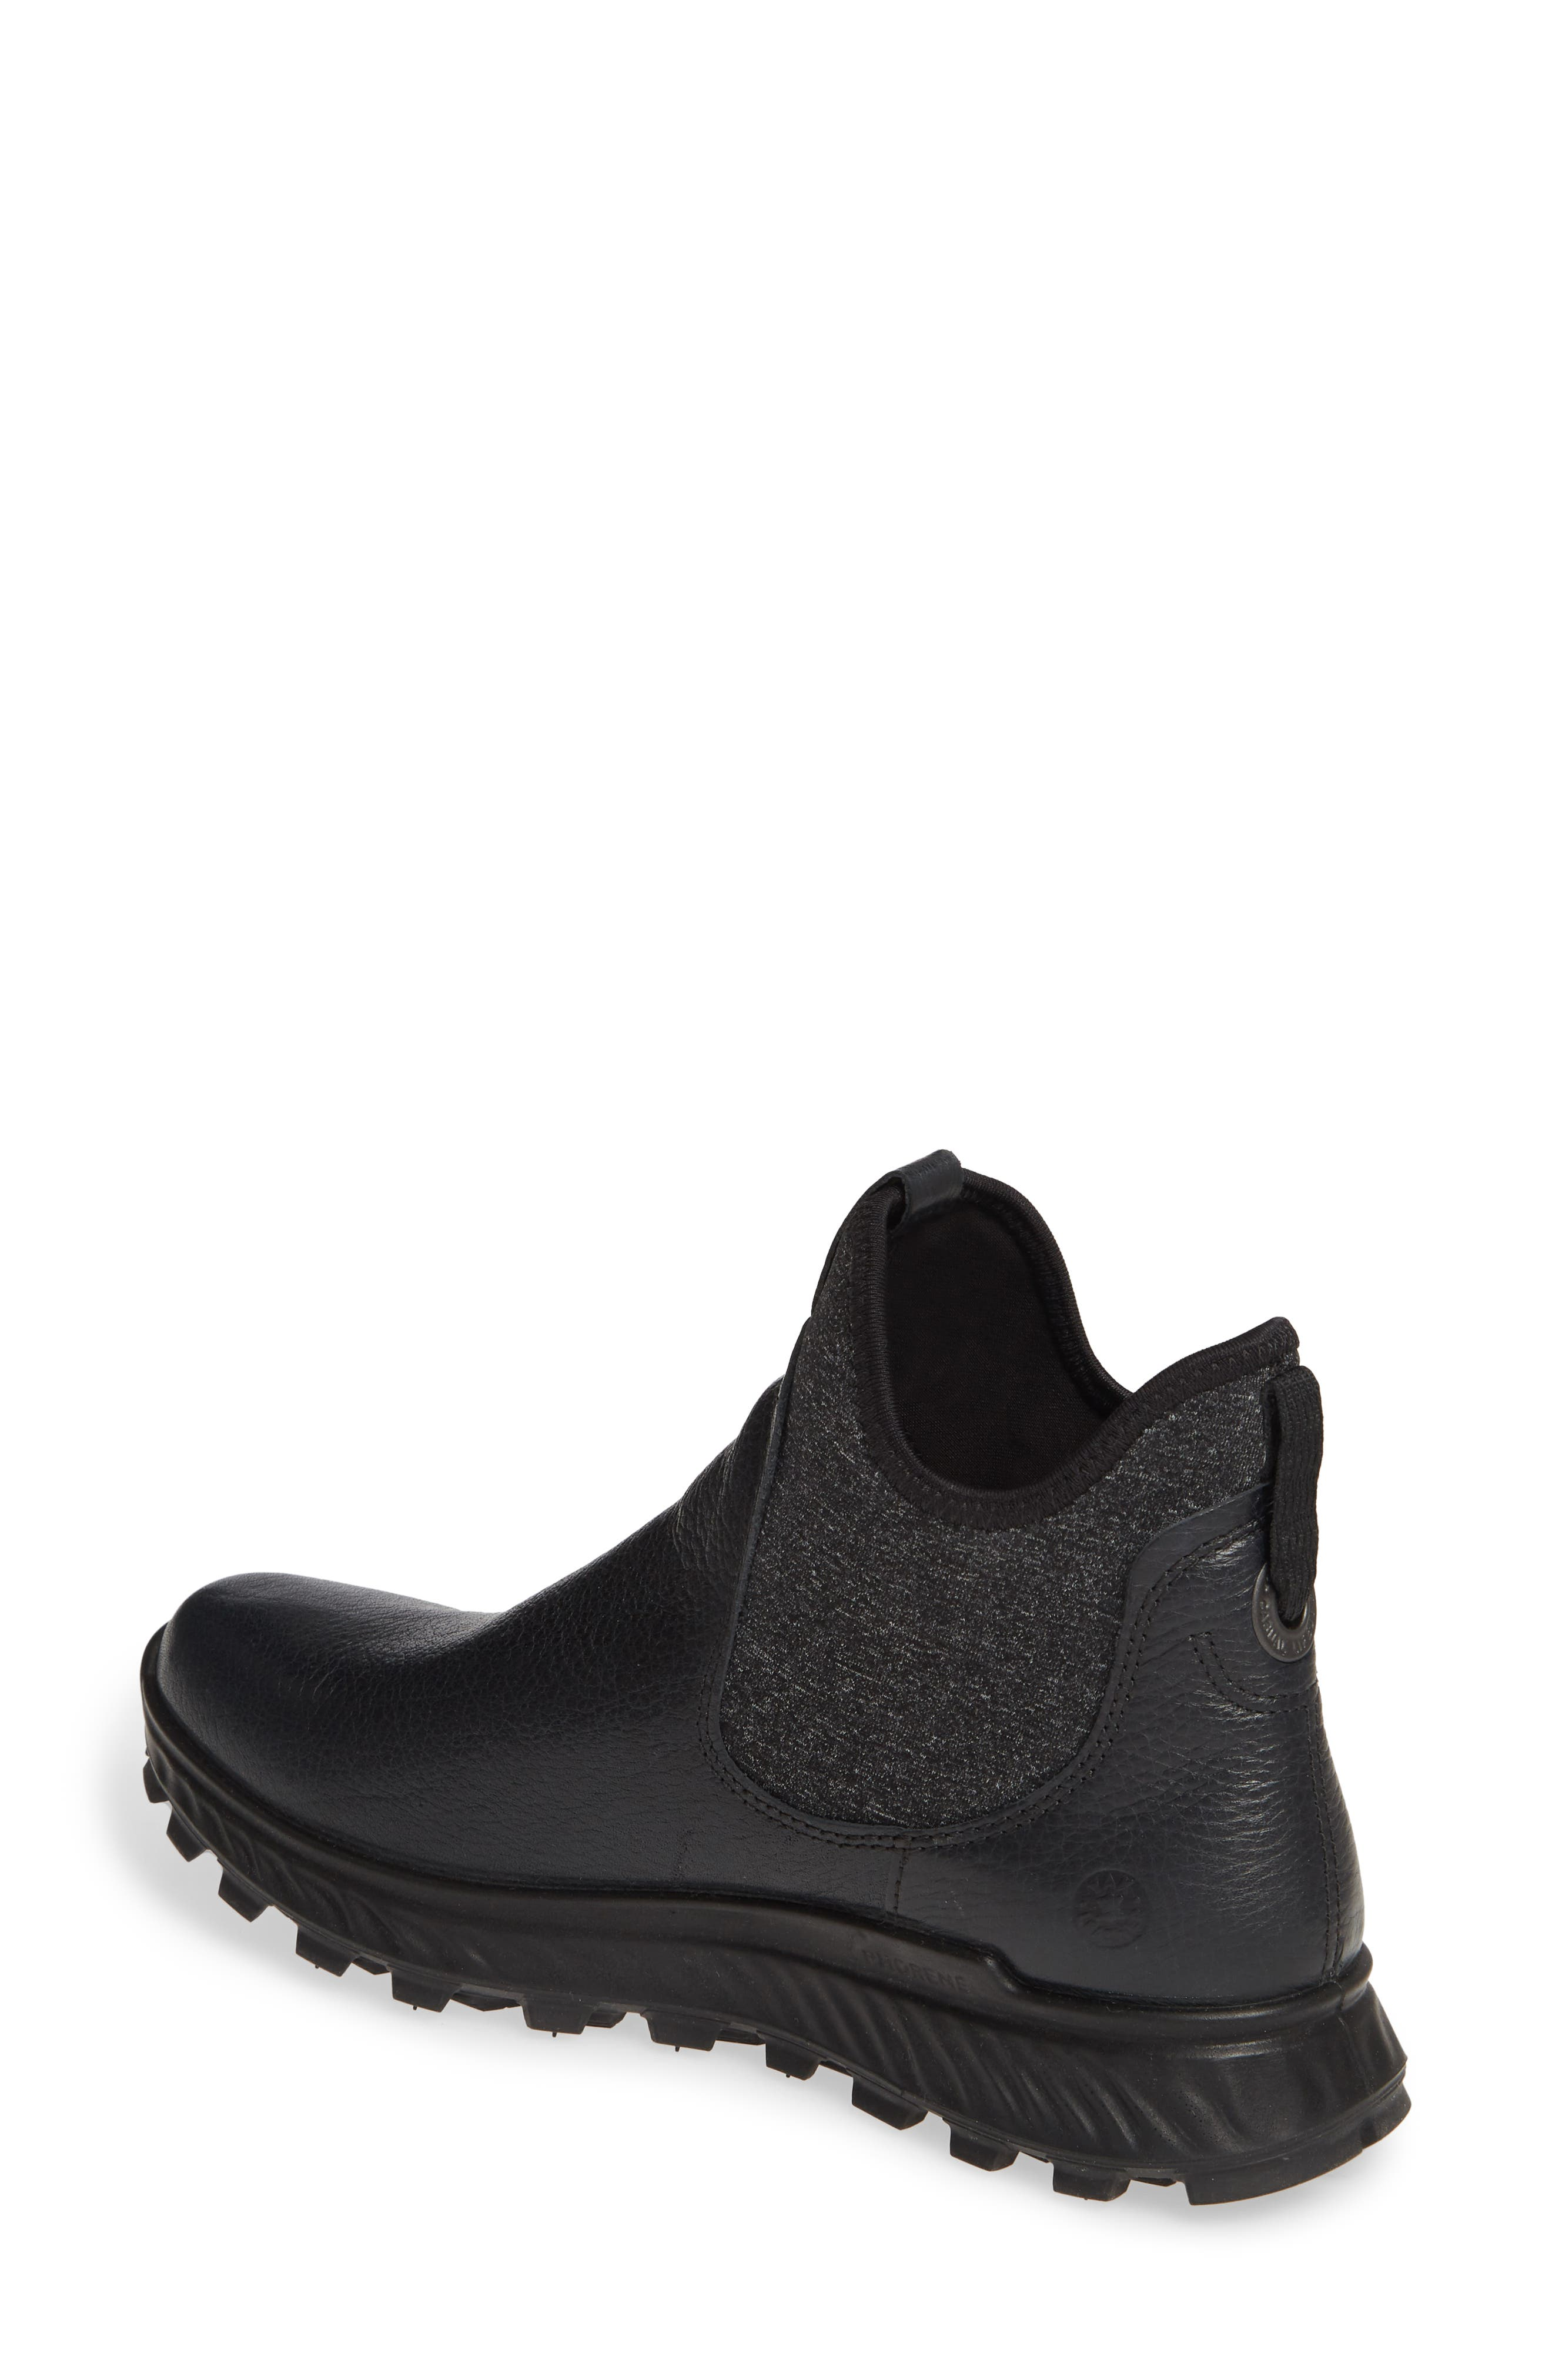 0ddc3b70 Women's ECCO Booties & Ankle Boots | Nordstrom